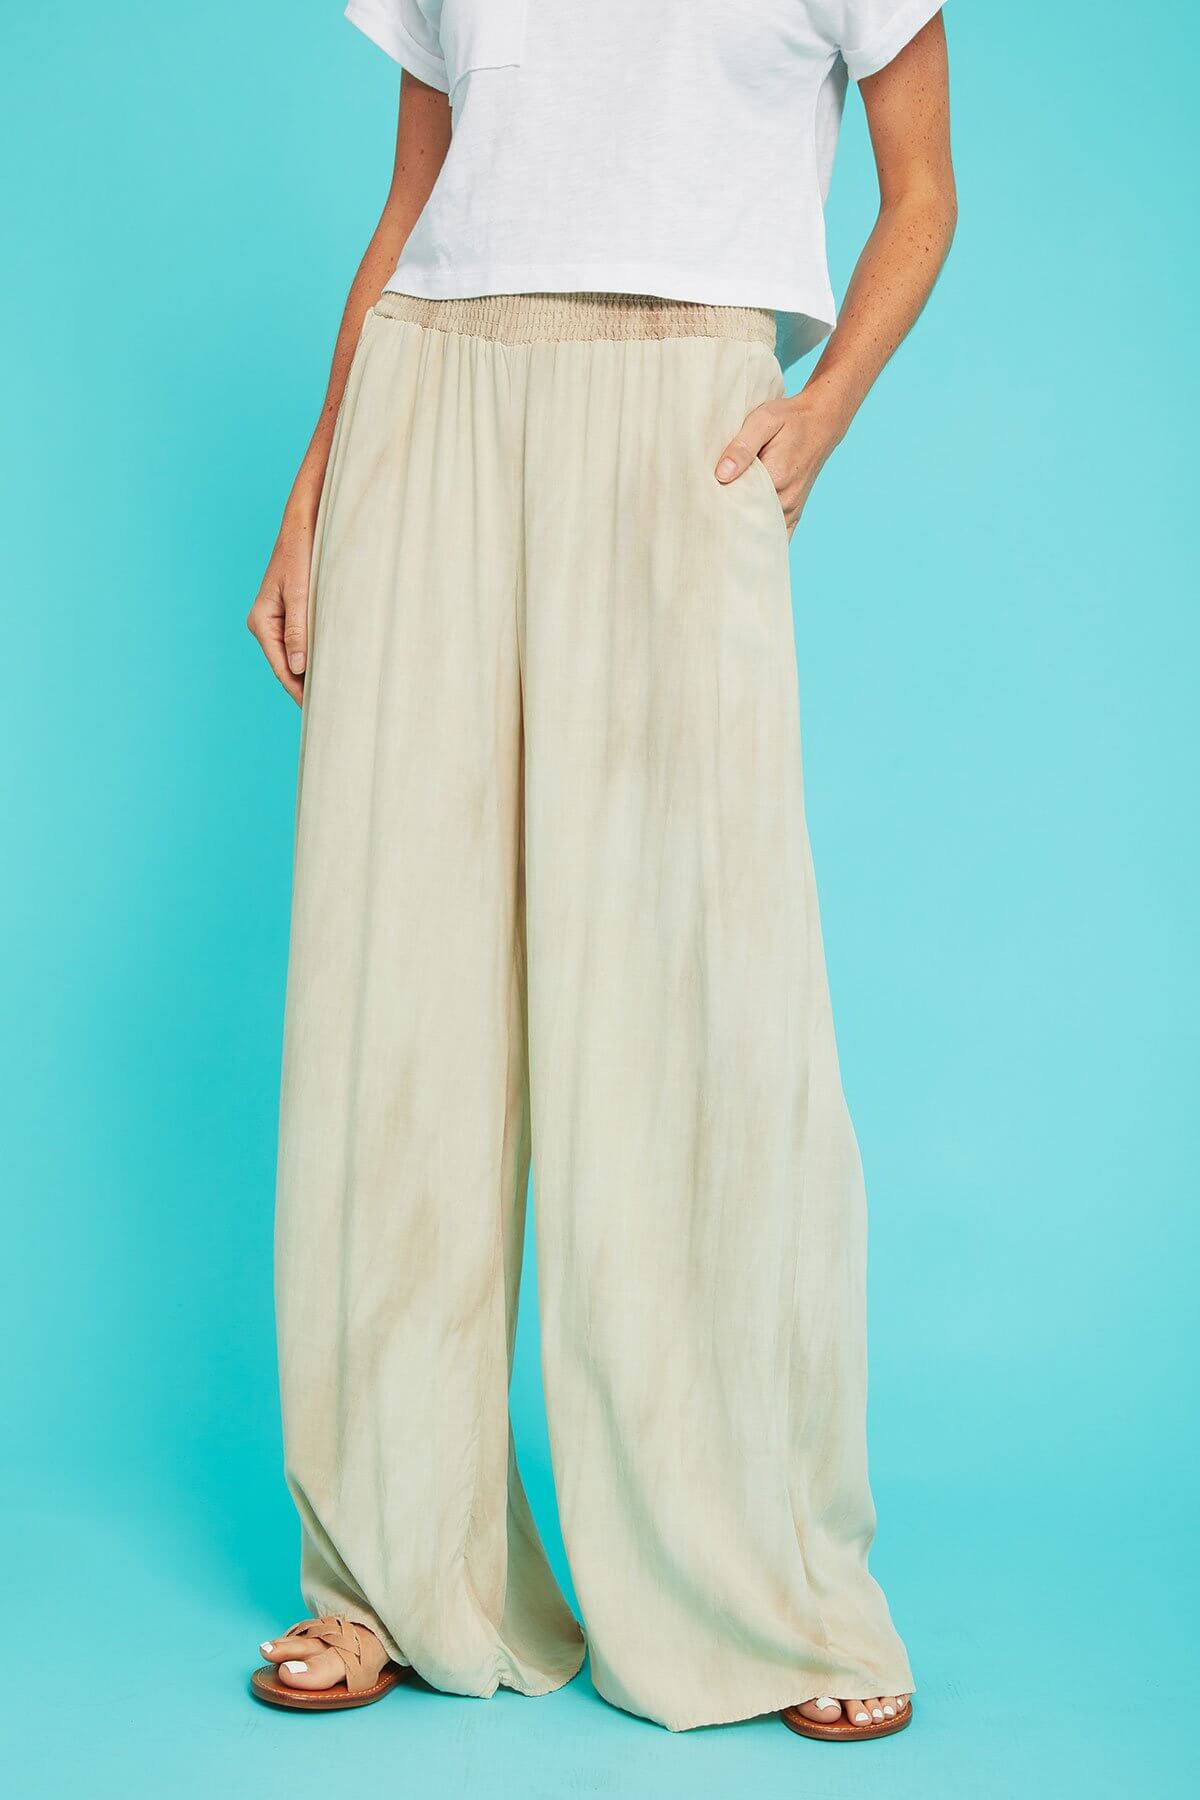 Final Touch Pigment Dyed Printed Beach Pants Review